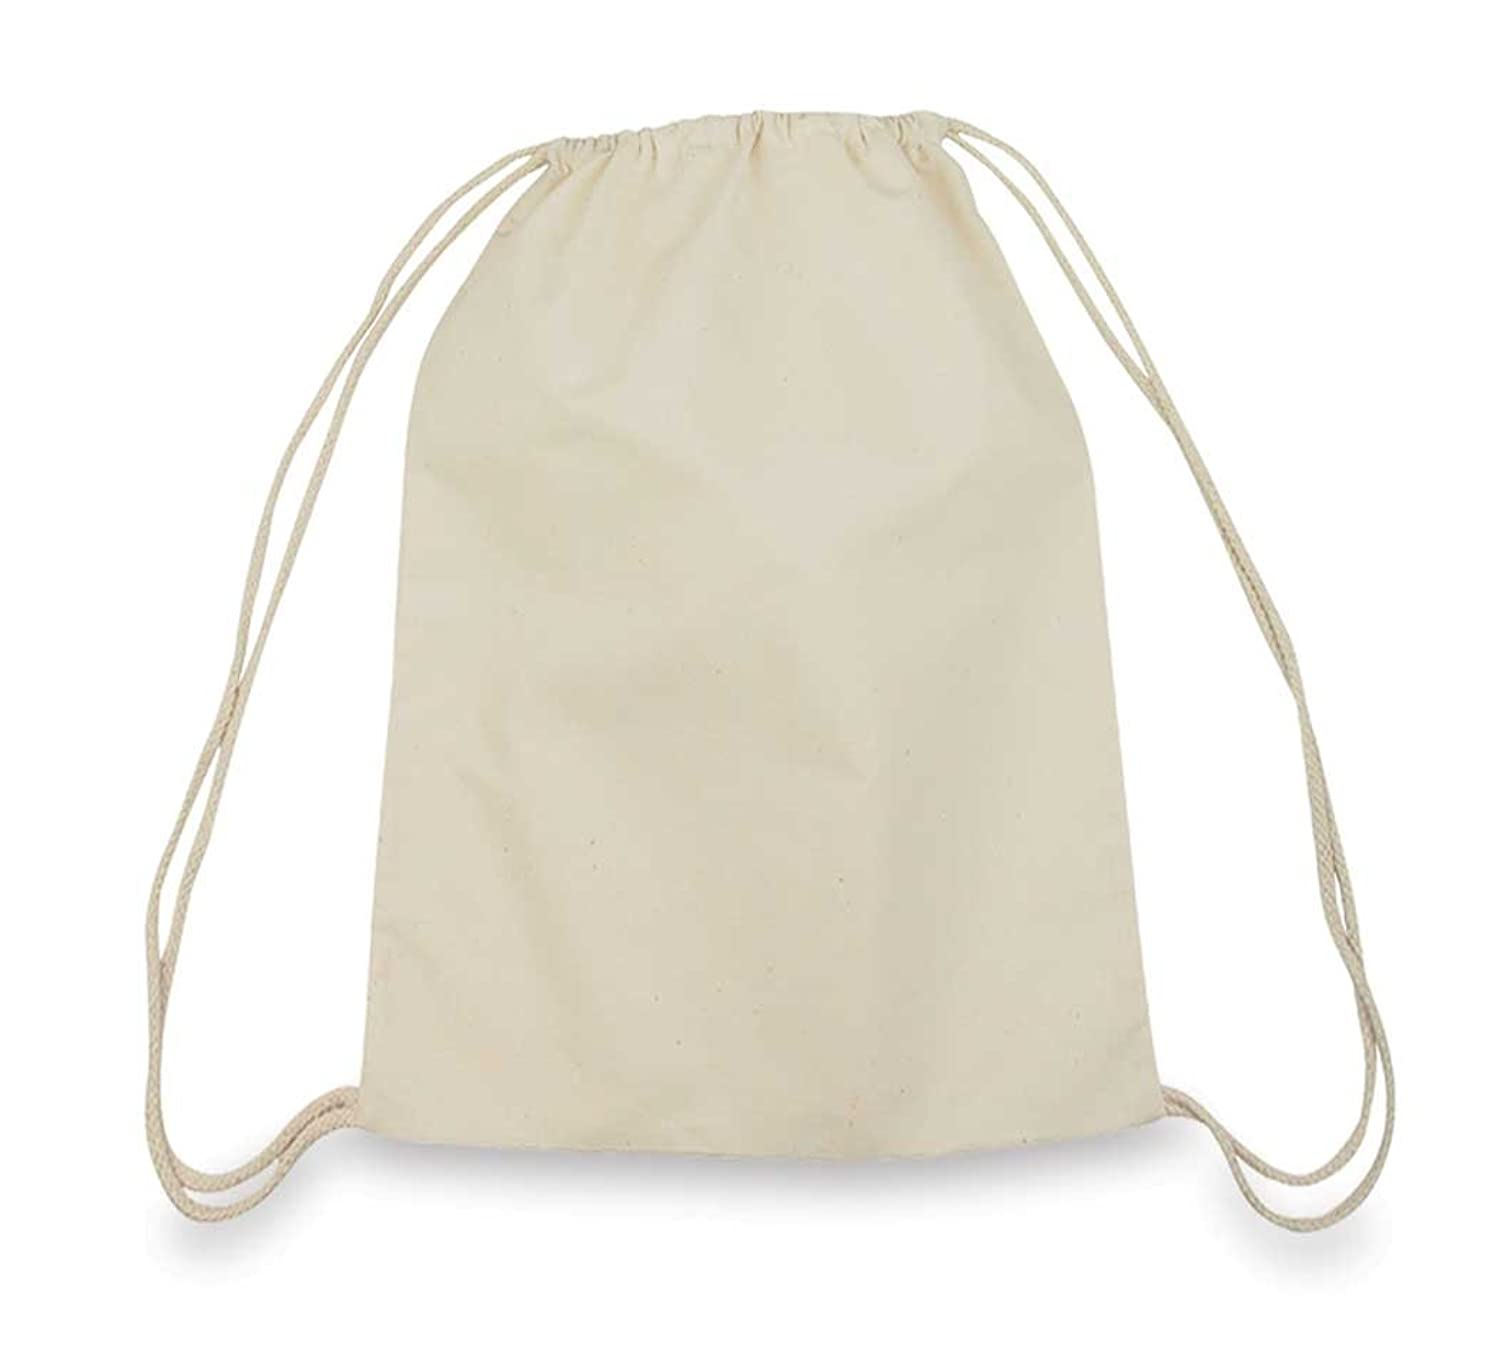 Amazon.com | Drawstring Bag Backpack Sack Made of Cotton in ...